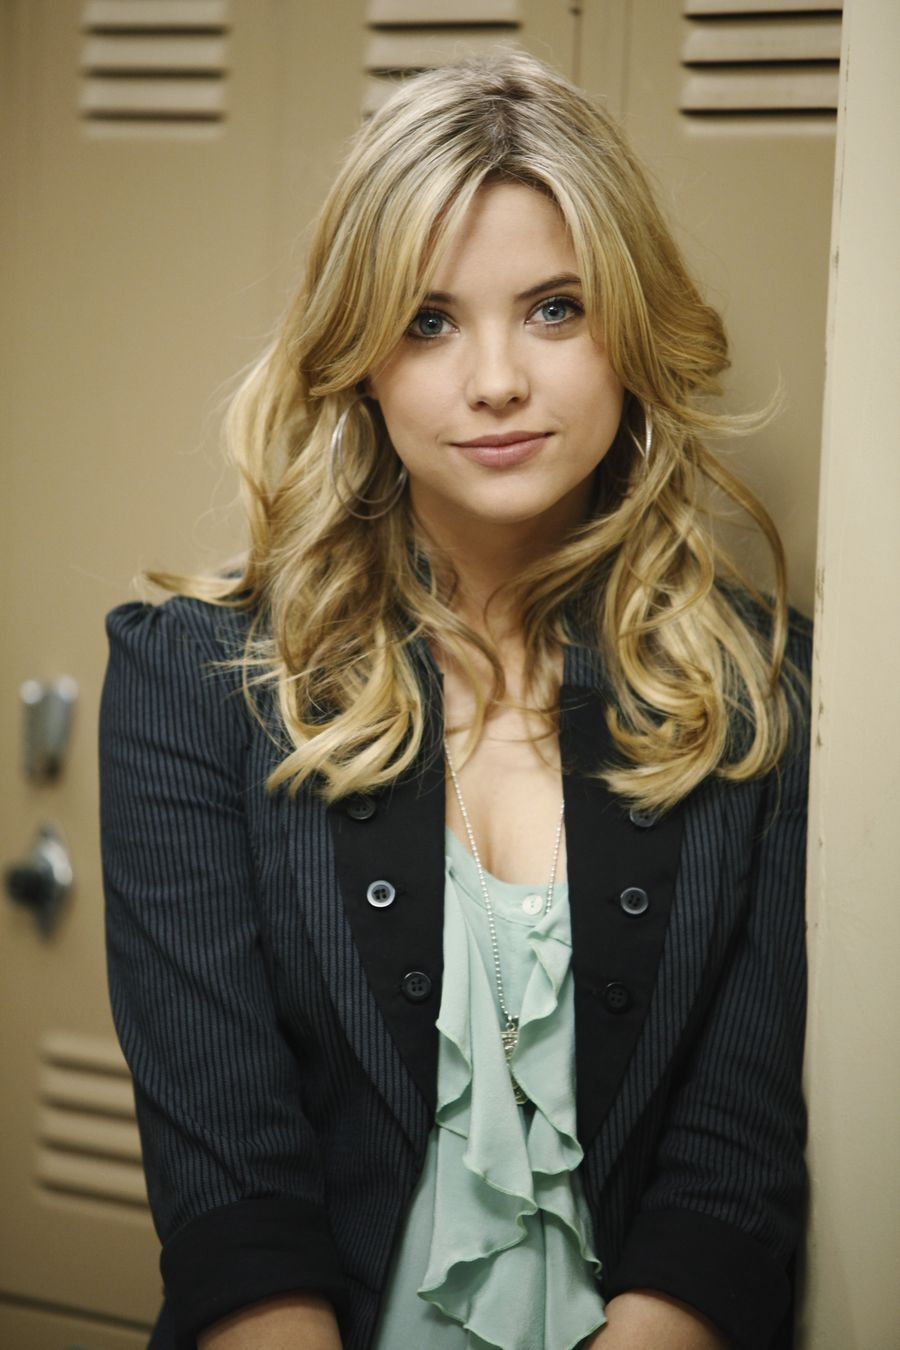 The Shape Of My Heart - Página 2 Pll-episode-2-stills-ashley-benson-12898353-900-1350